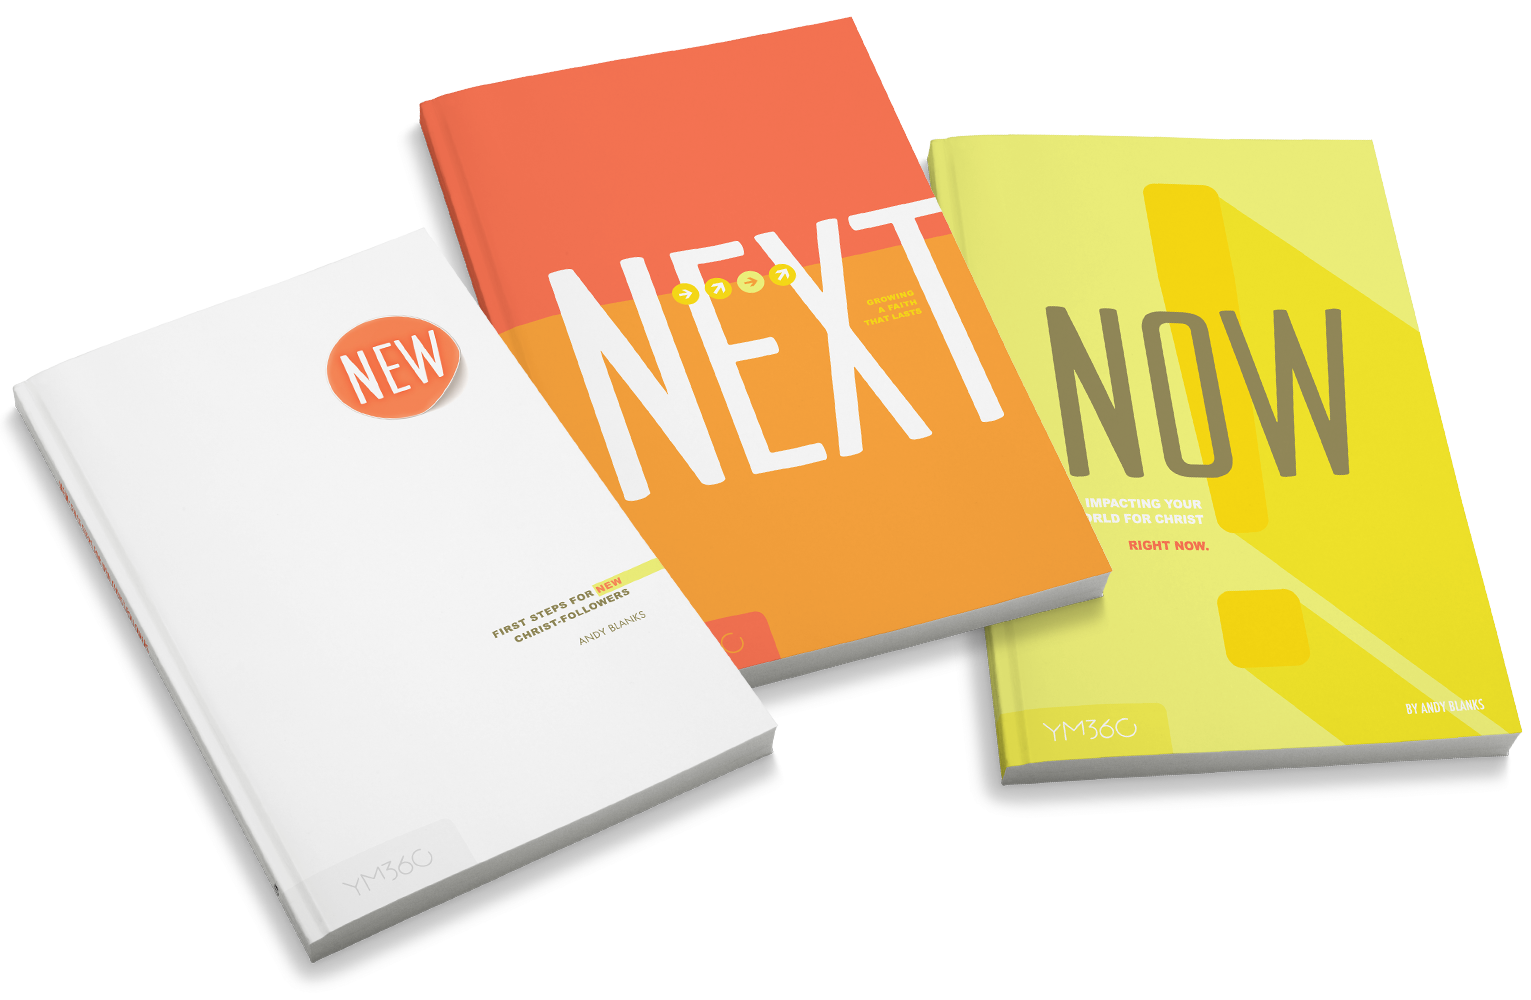 New, Next, Now: A Discipleship Devotional Bundle